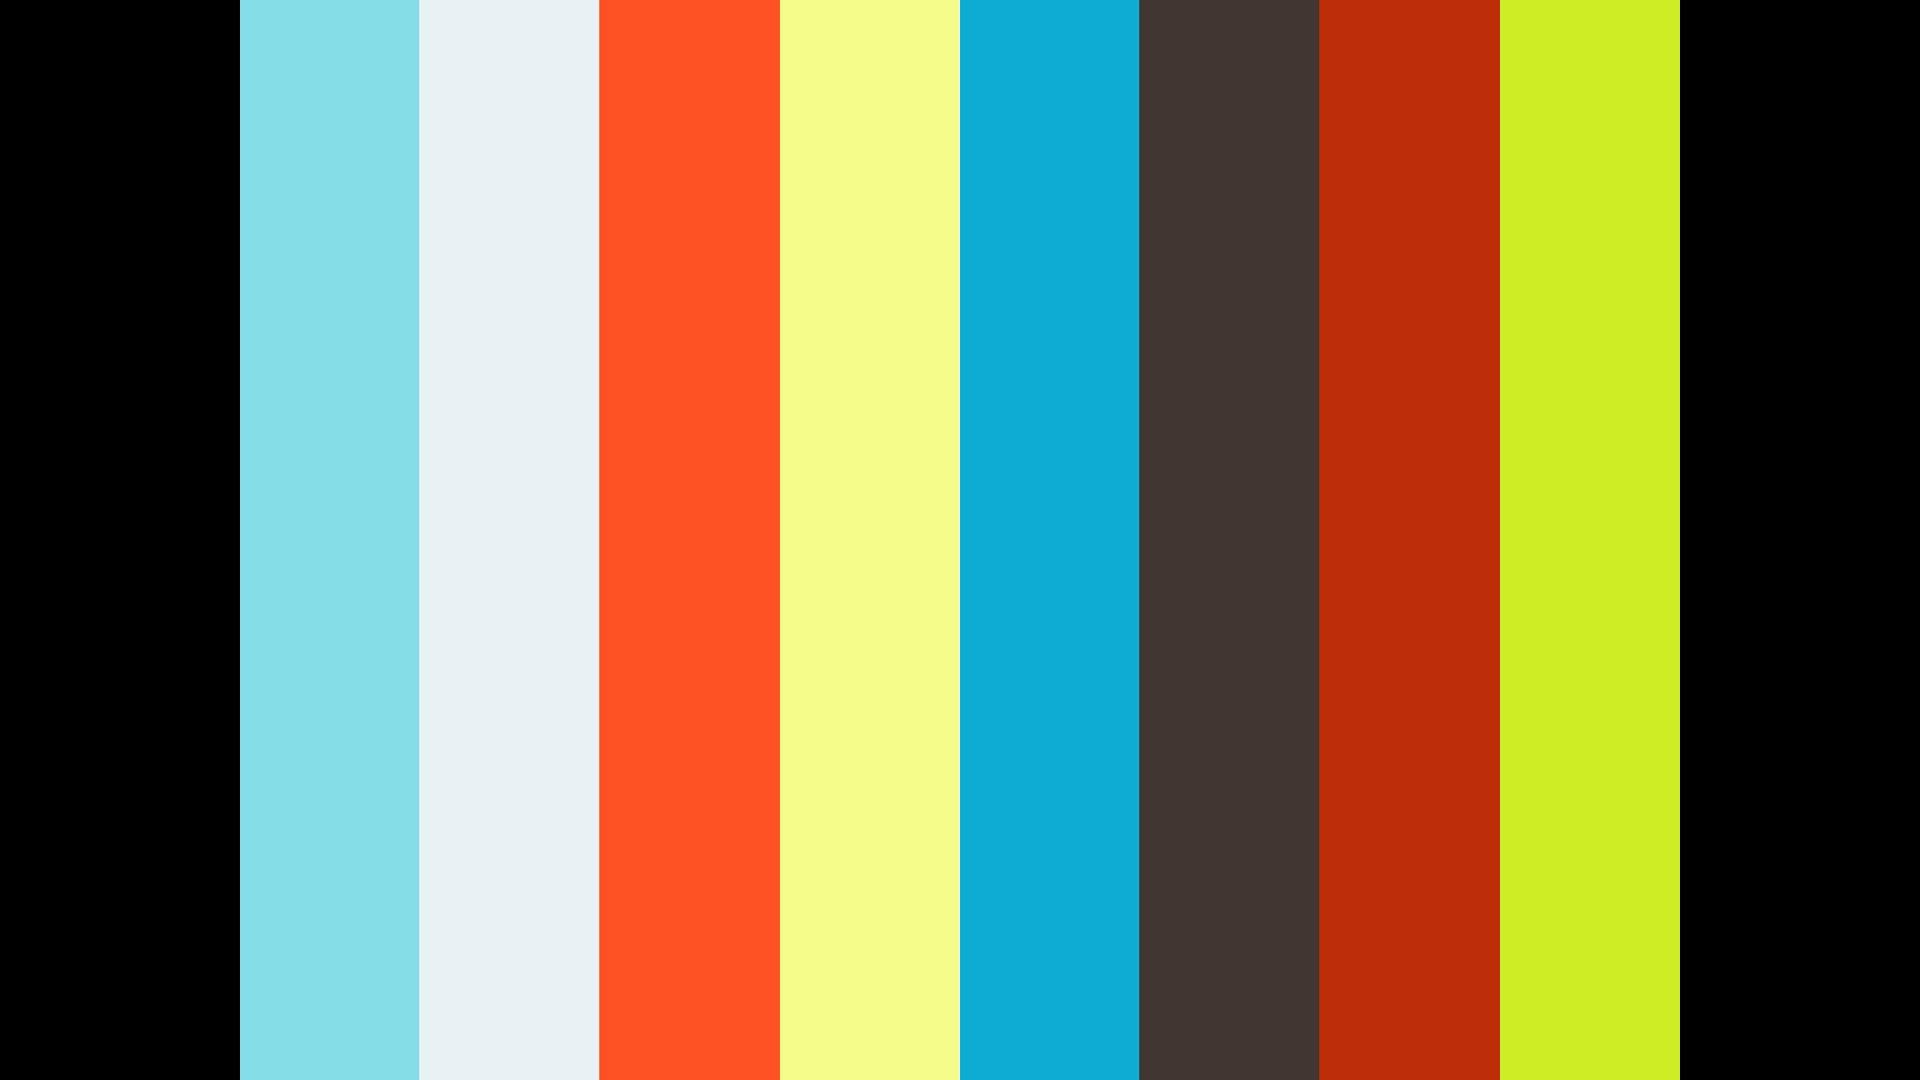 Arroyo Grande Community Hospital Commercial—Featuring Ed Cardozza